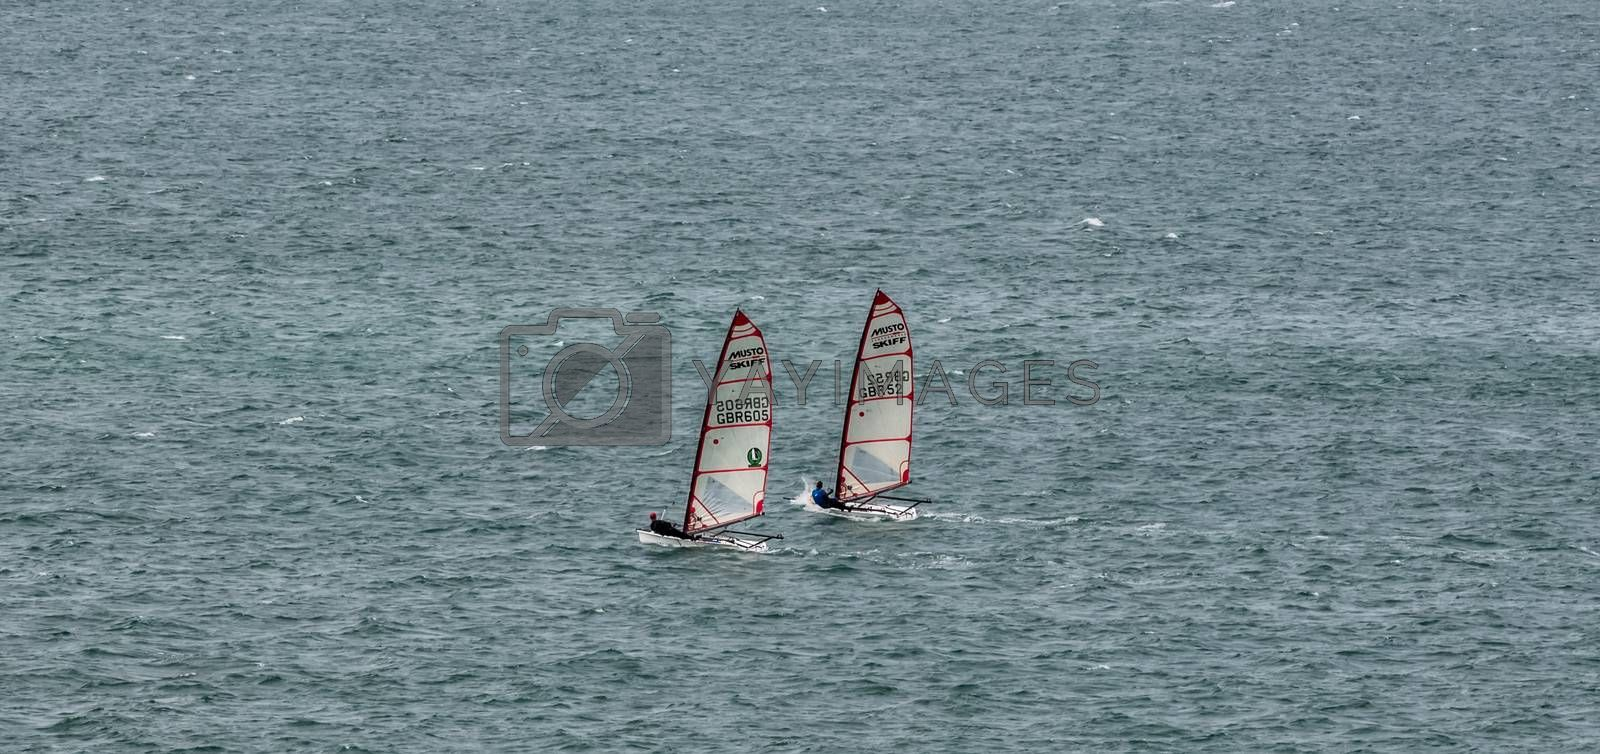 Portland Harbor, UK - July 1, 2020: Two racing Musto Skiff boats sailing in the harbor.